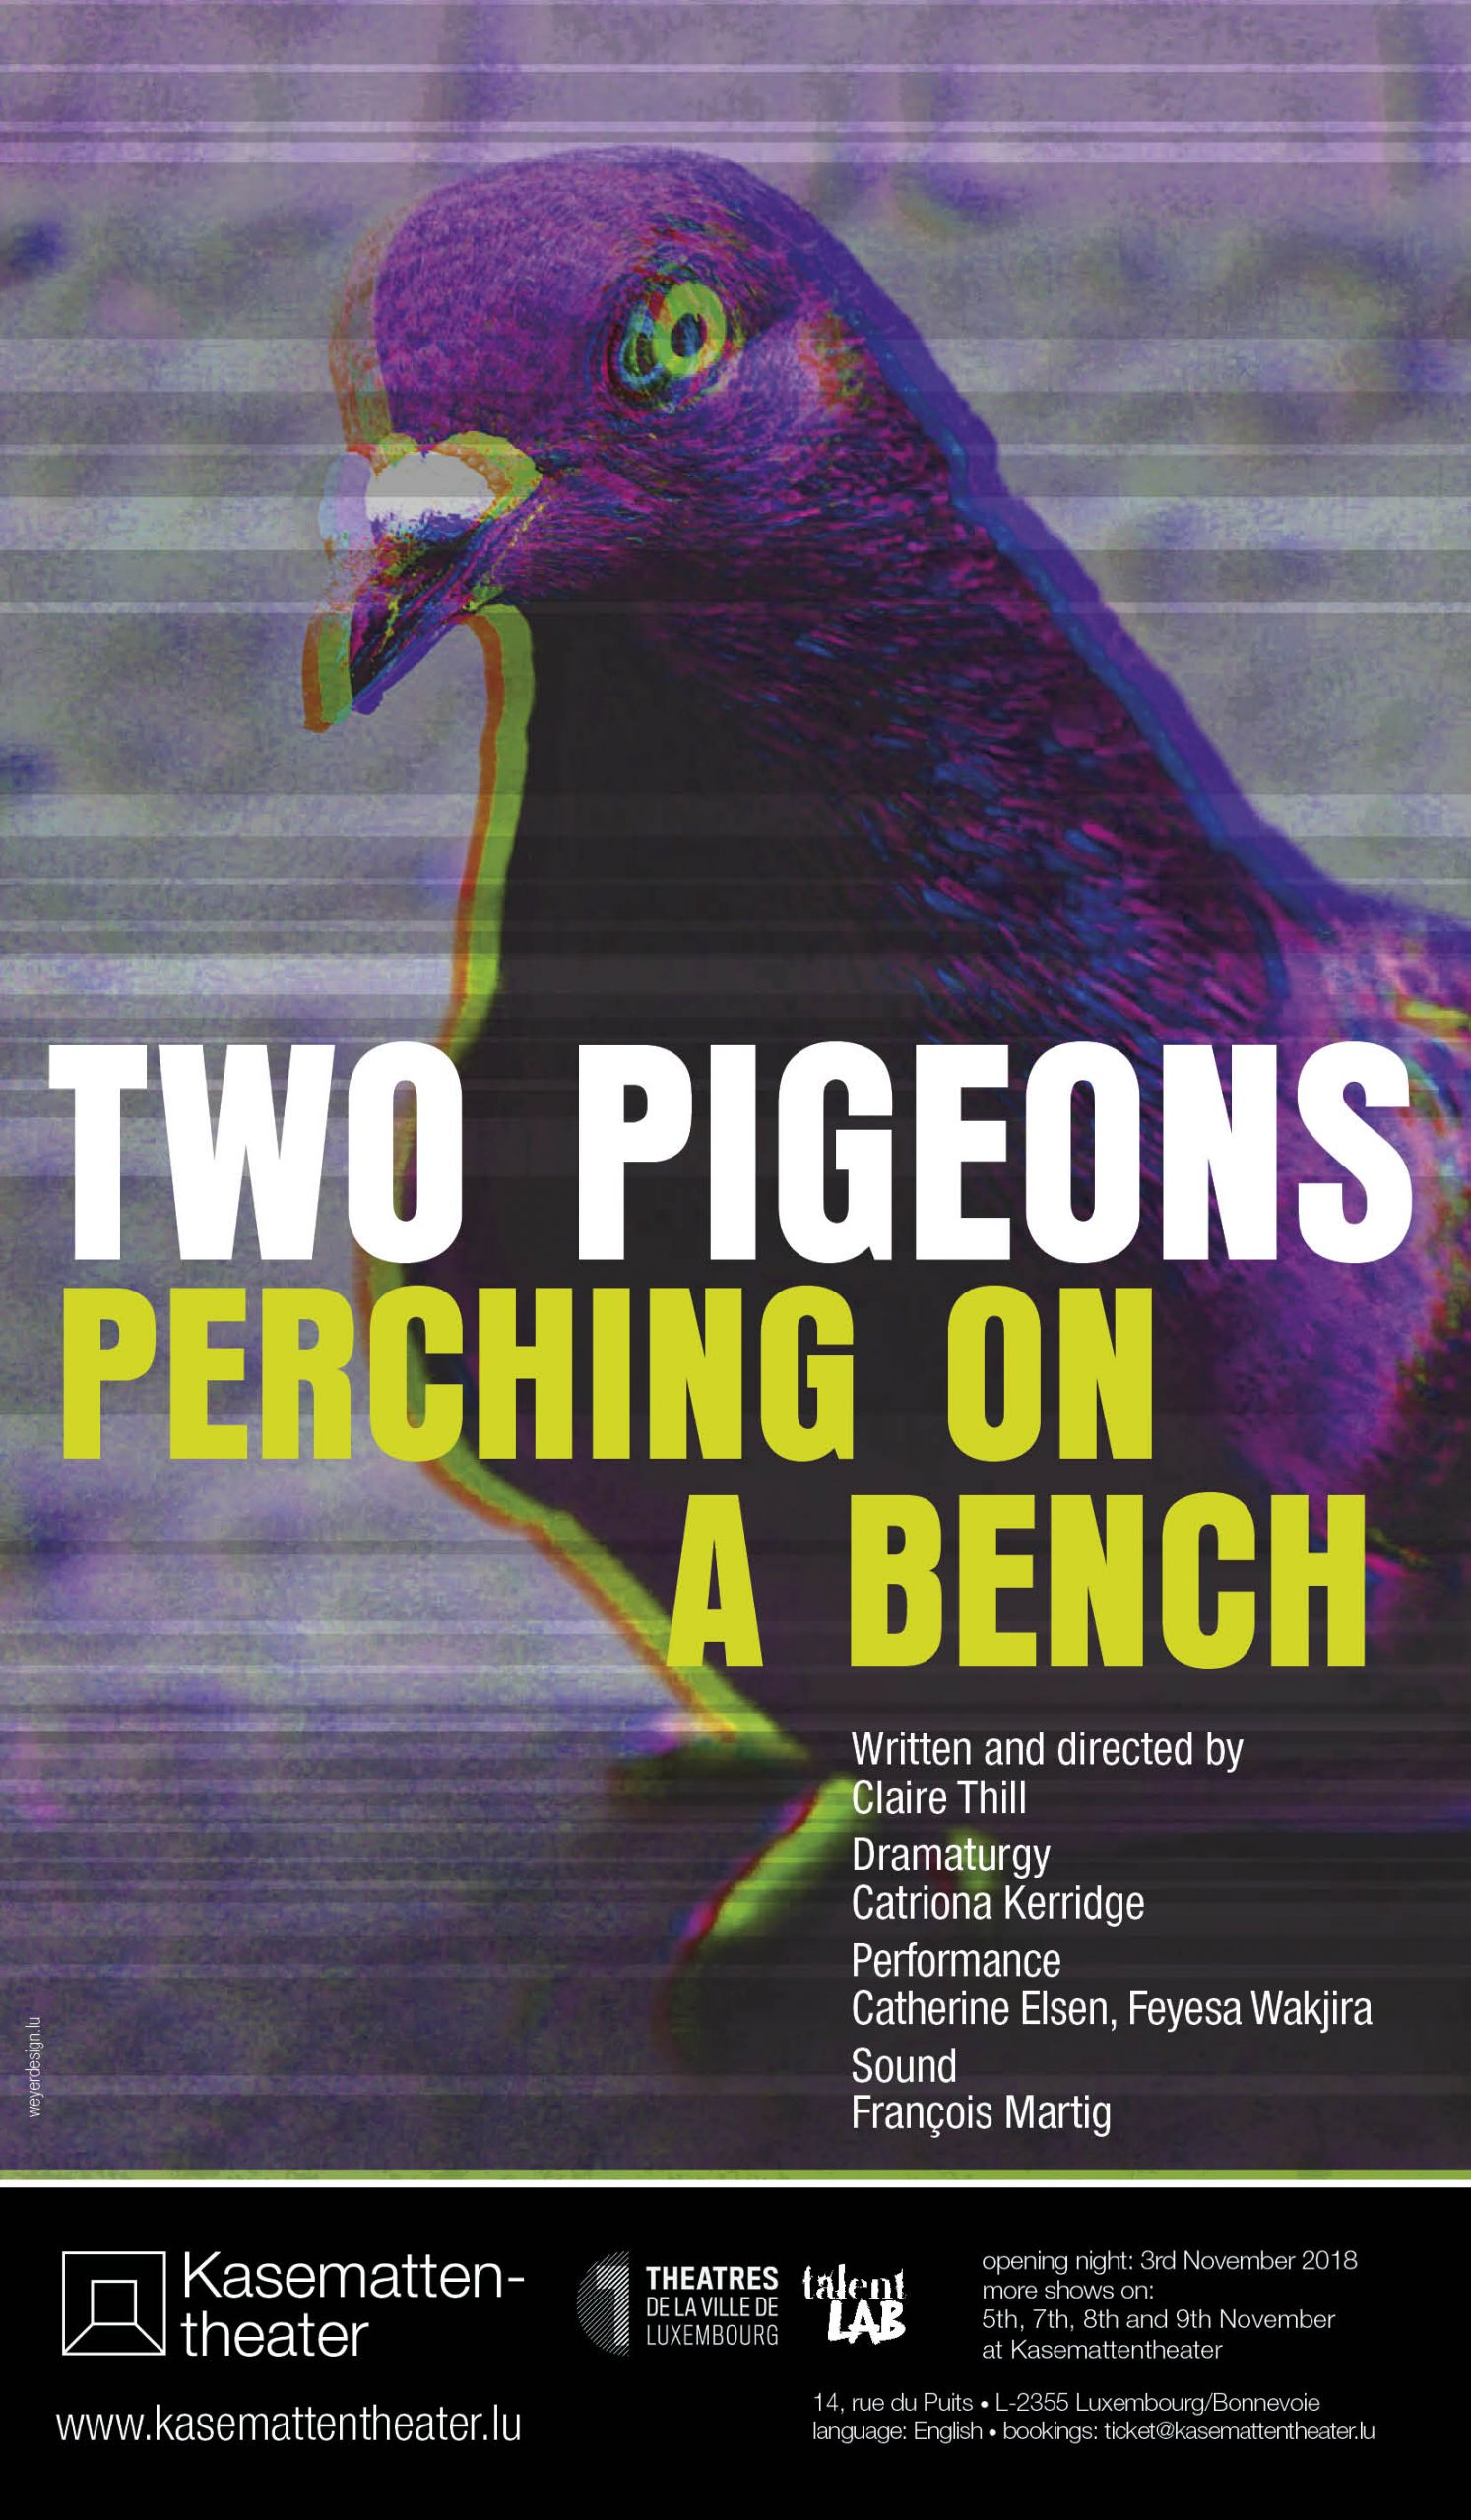 2018 Affiche Two Pigeons perching on a bench 2018 in the Kasemattentheater